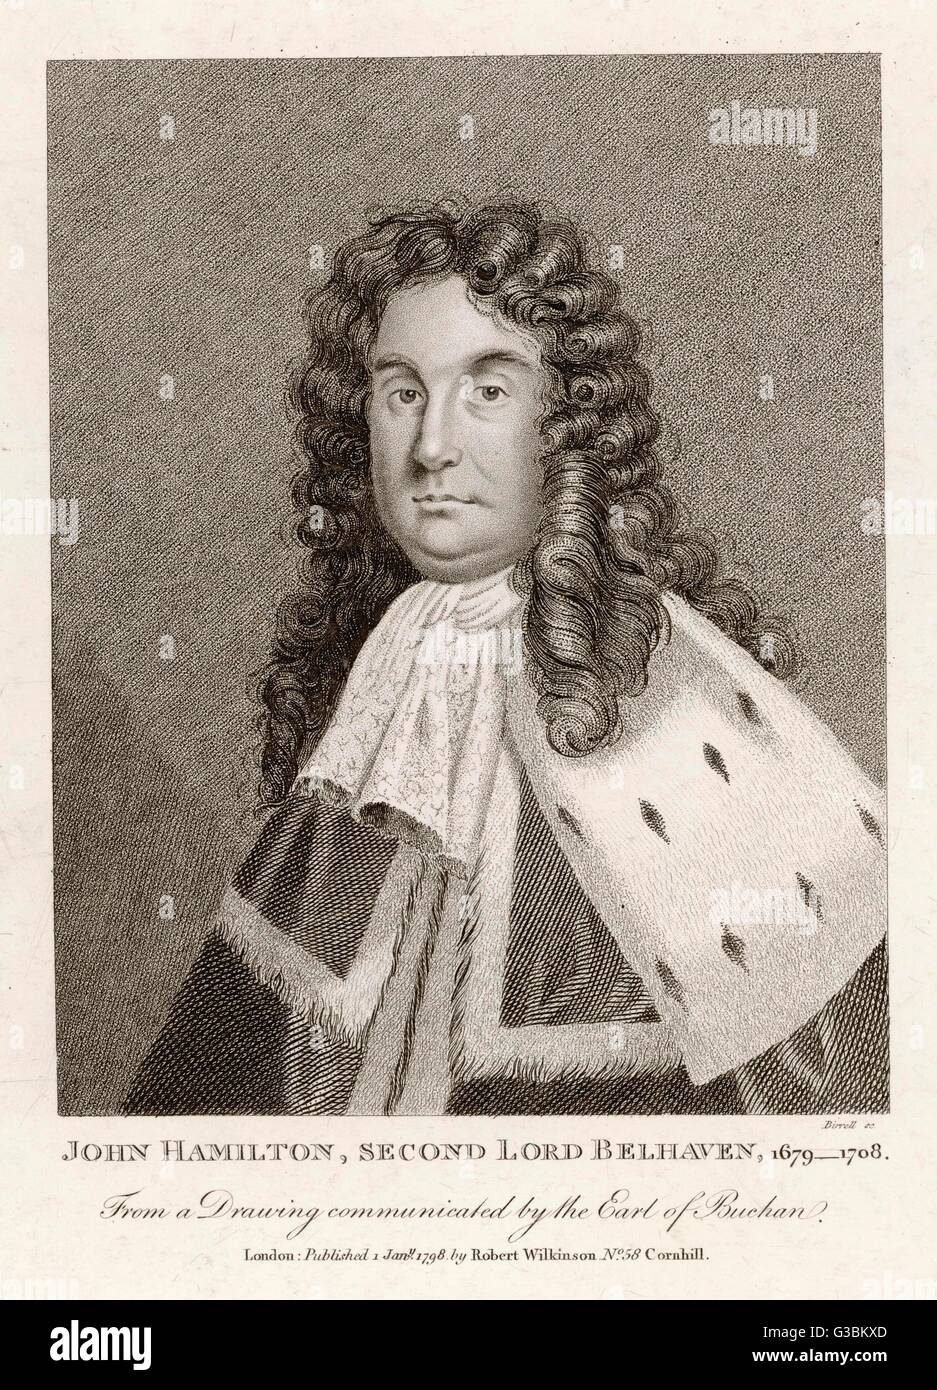 JOHN HAMILTON privy councillor who strongly  opposed the union of England  with Scotland       Date: 1679 - 1708 - Stock Image